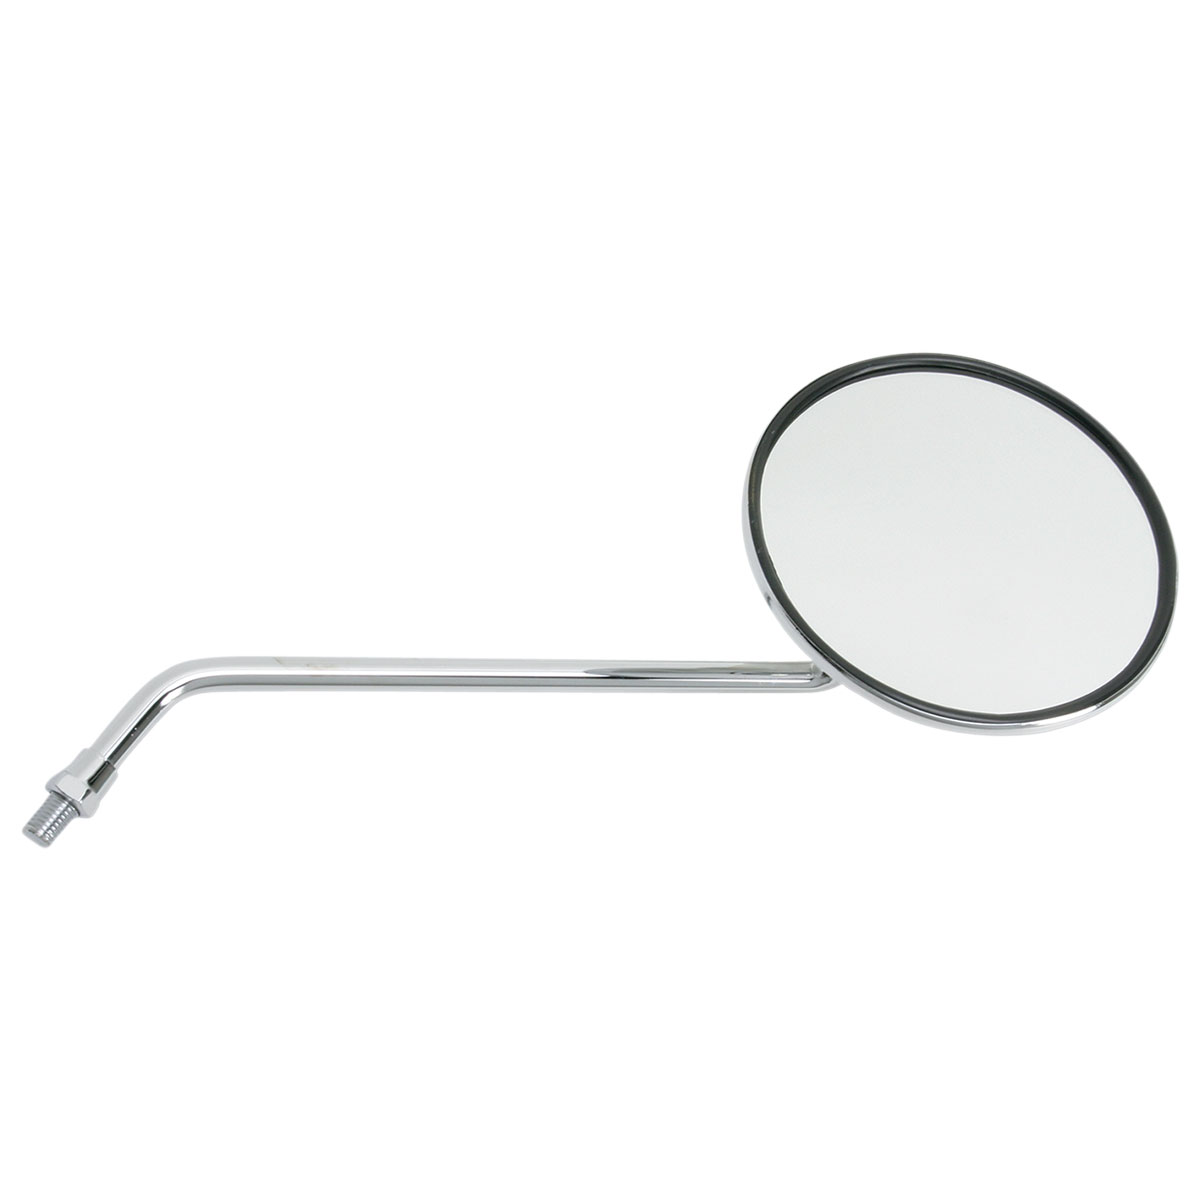 J&P Cycles® Universal Mirror